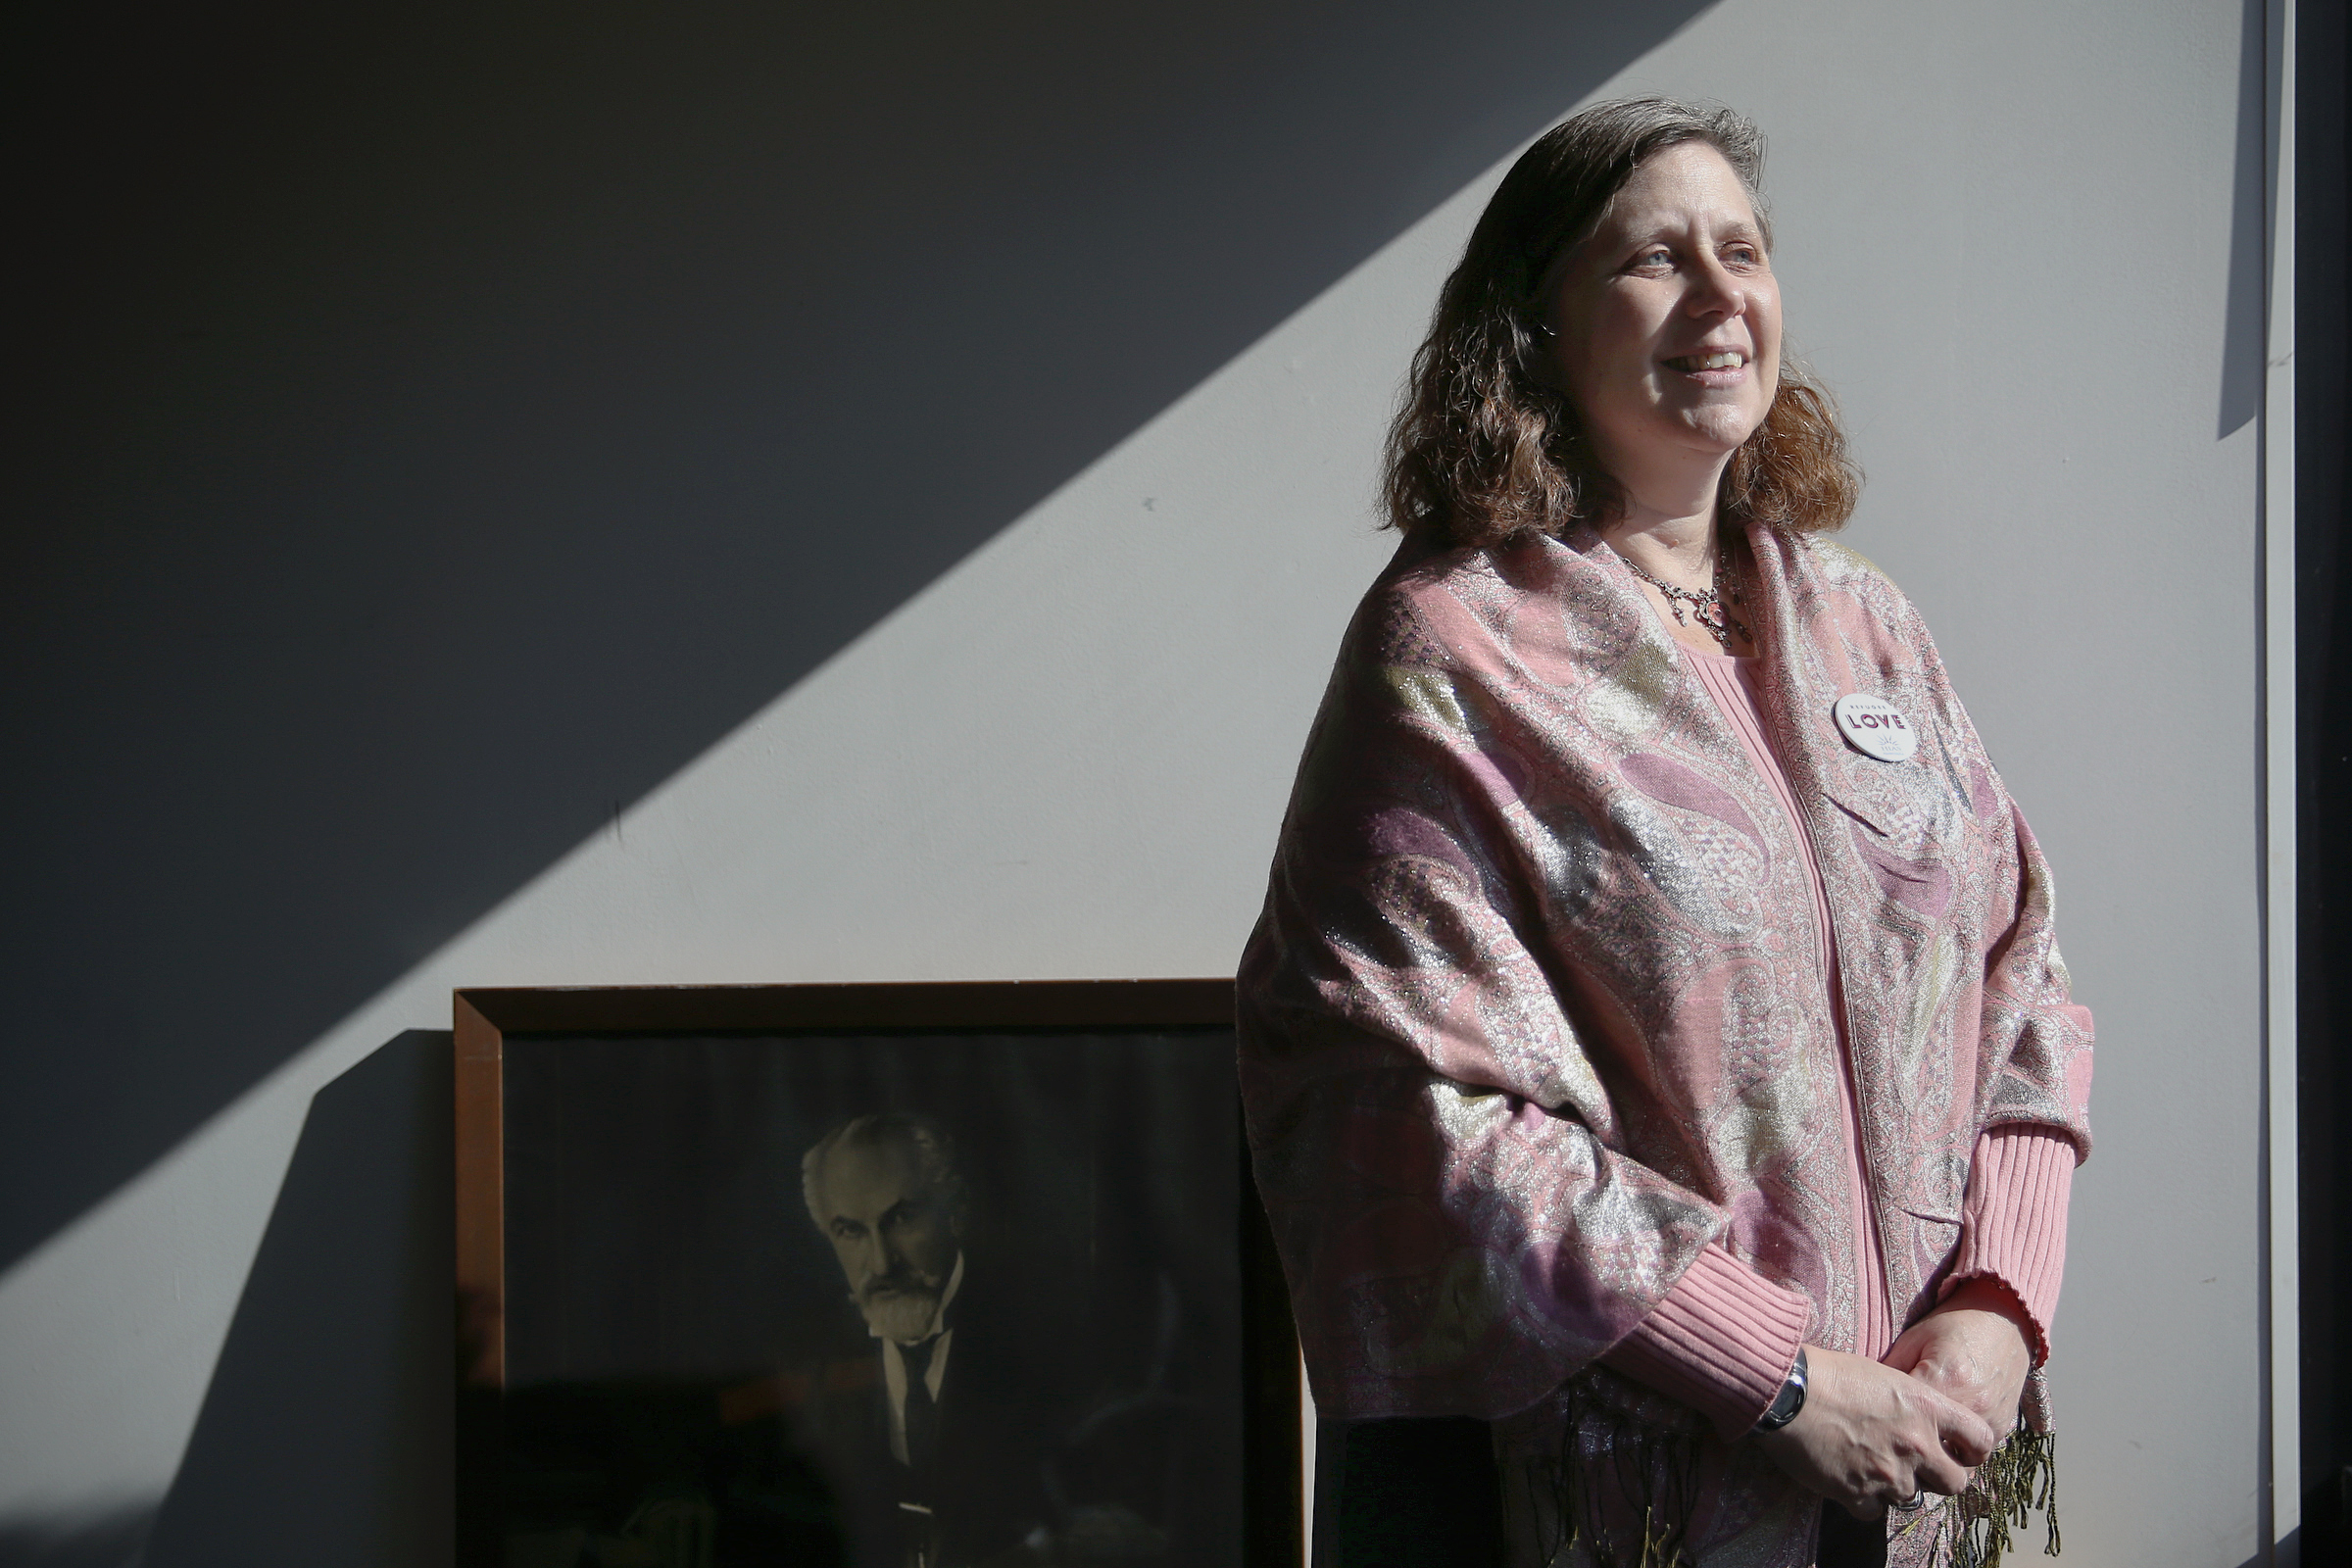 HIAS Pennsylvania Executive Director Cathryn Miller-Wilson stands for a portrait in her office in Philadelphia.